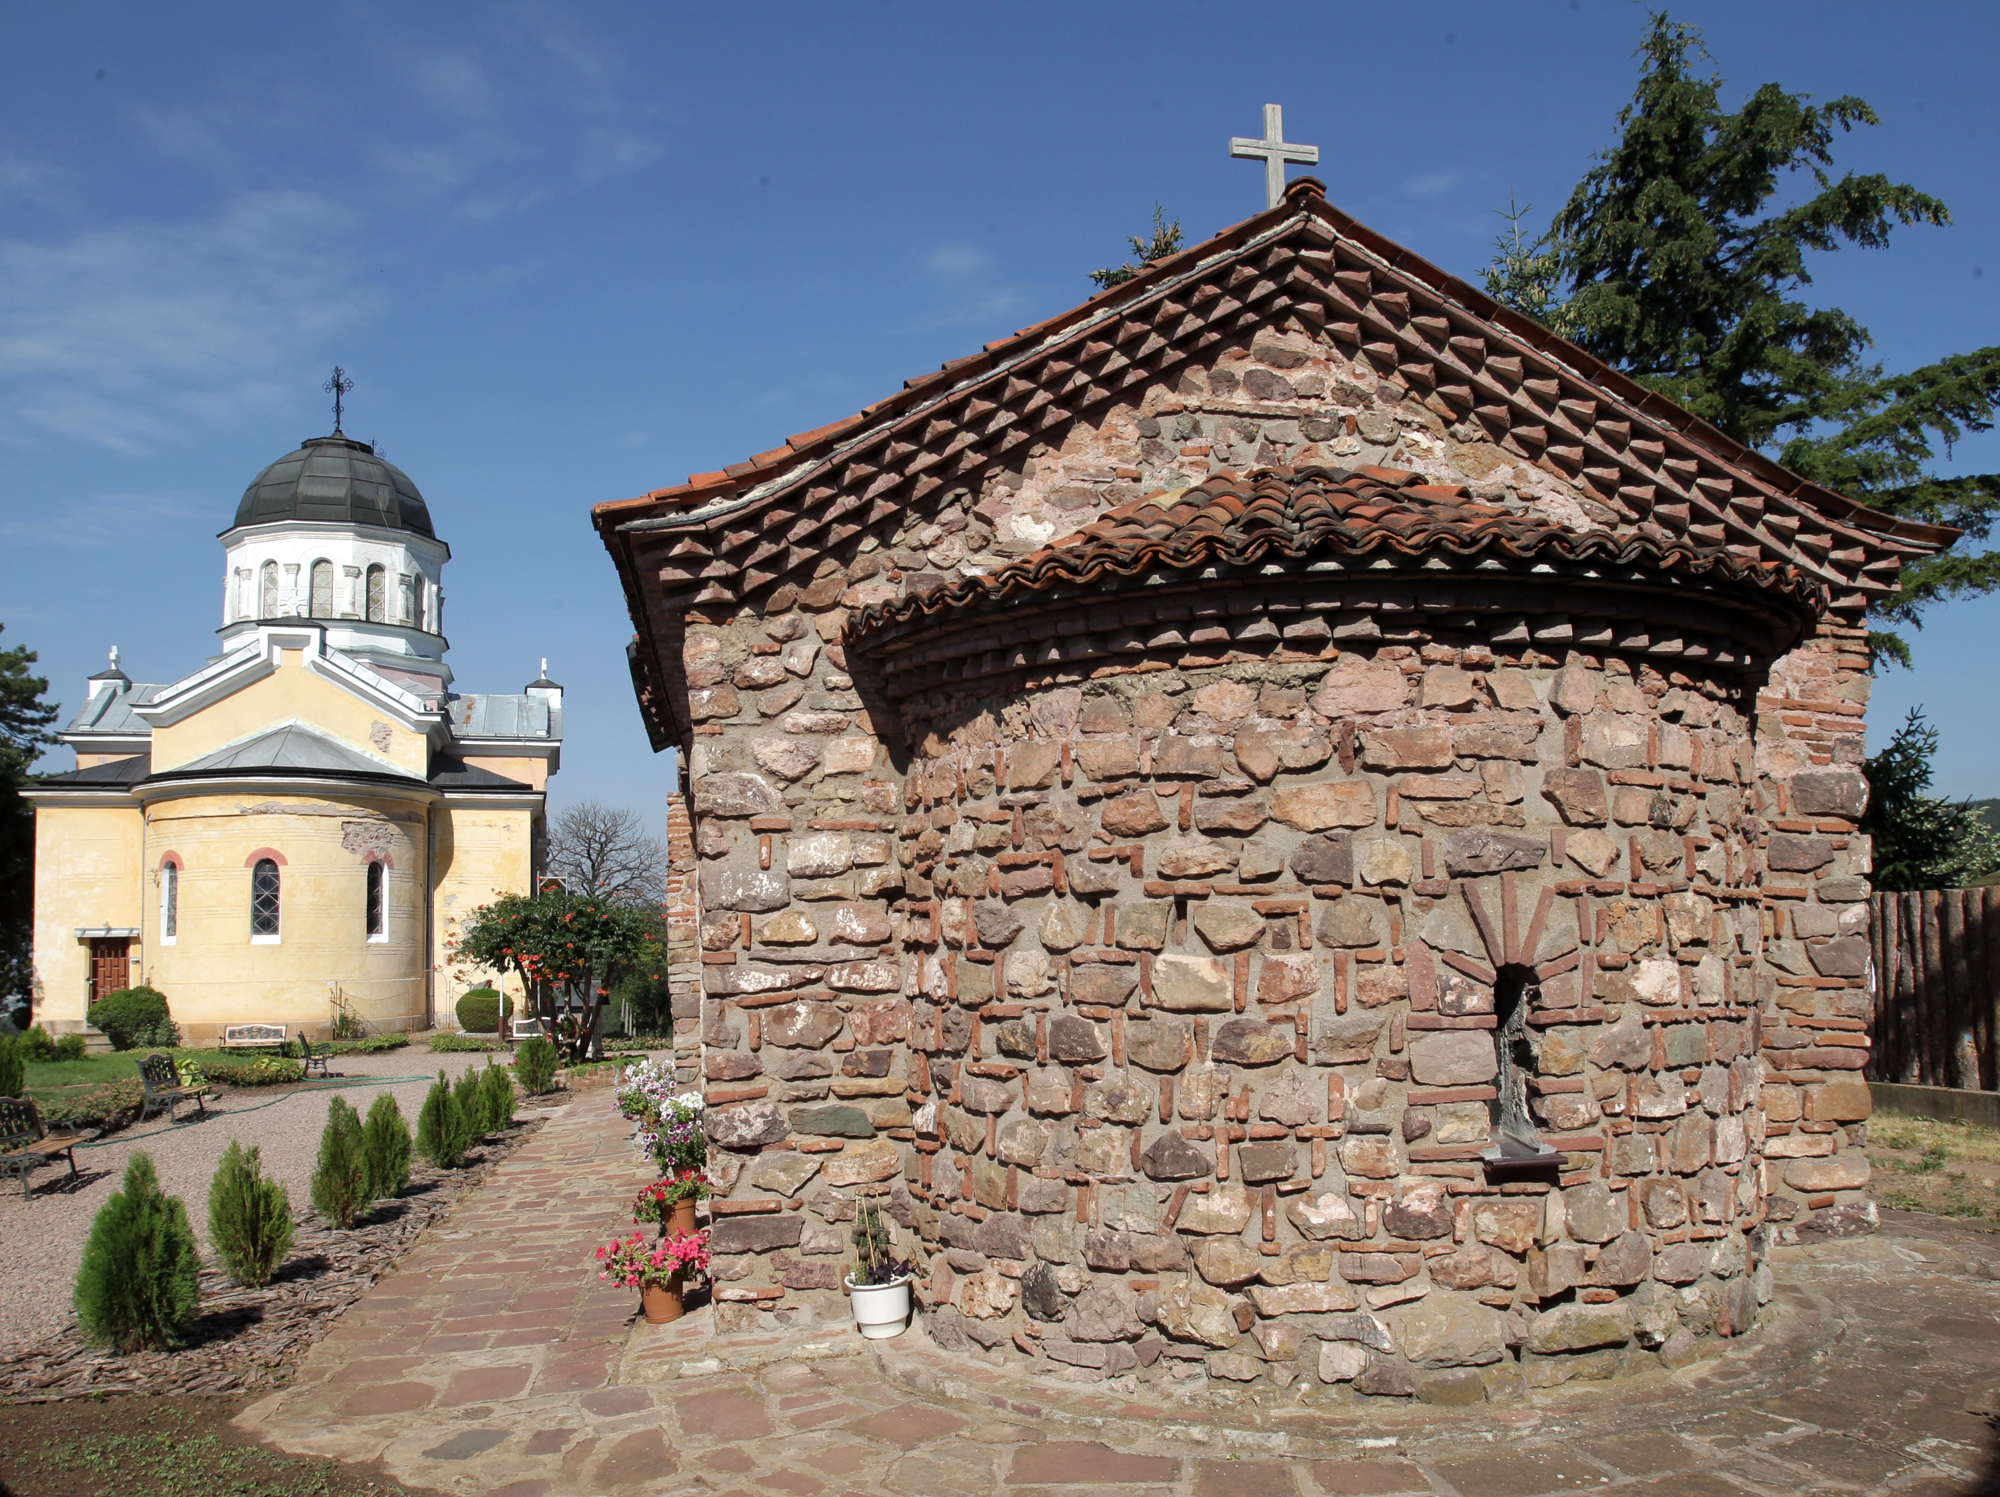 Kremikovtsi Monastery - the Church of the Holy Martyr George the Victorious